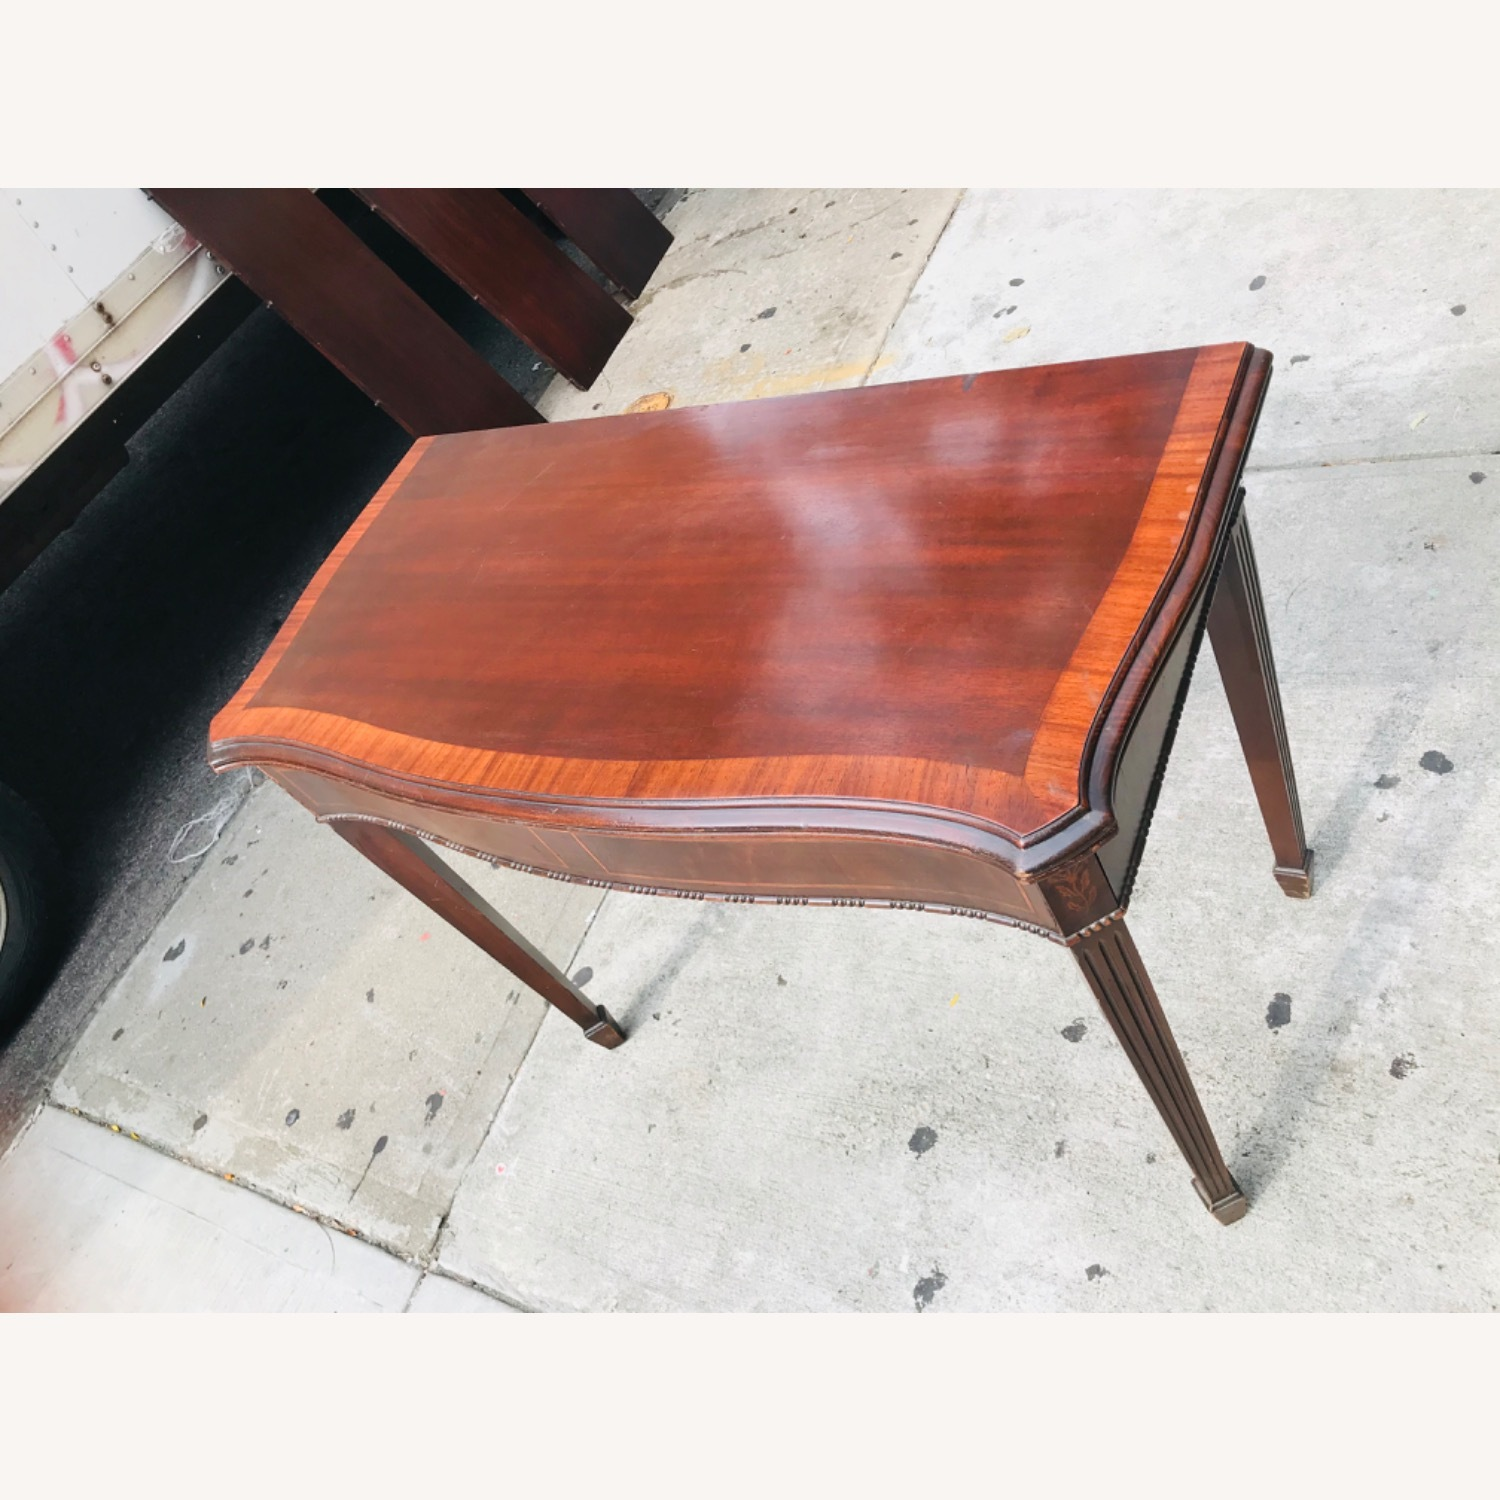 Antique 1920s Mahogany Table w/3 Leaves  - image-3